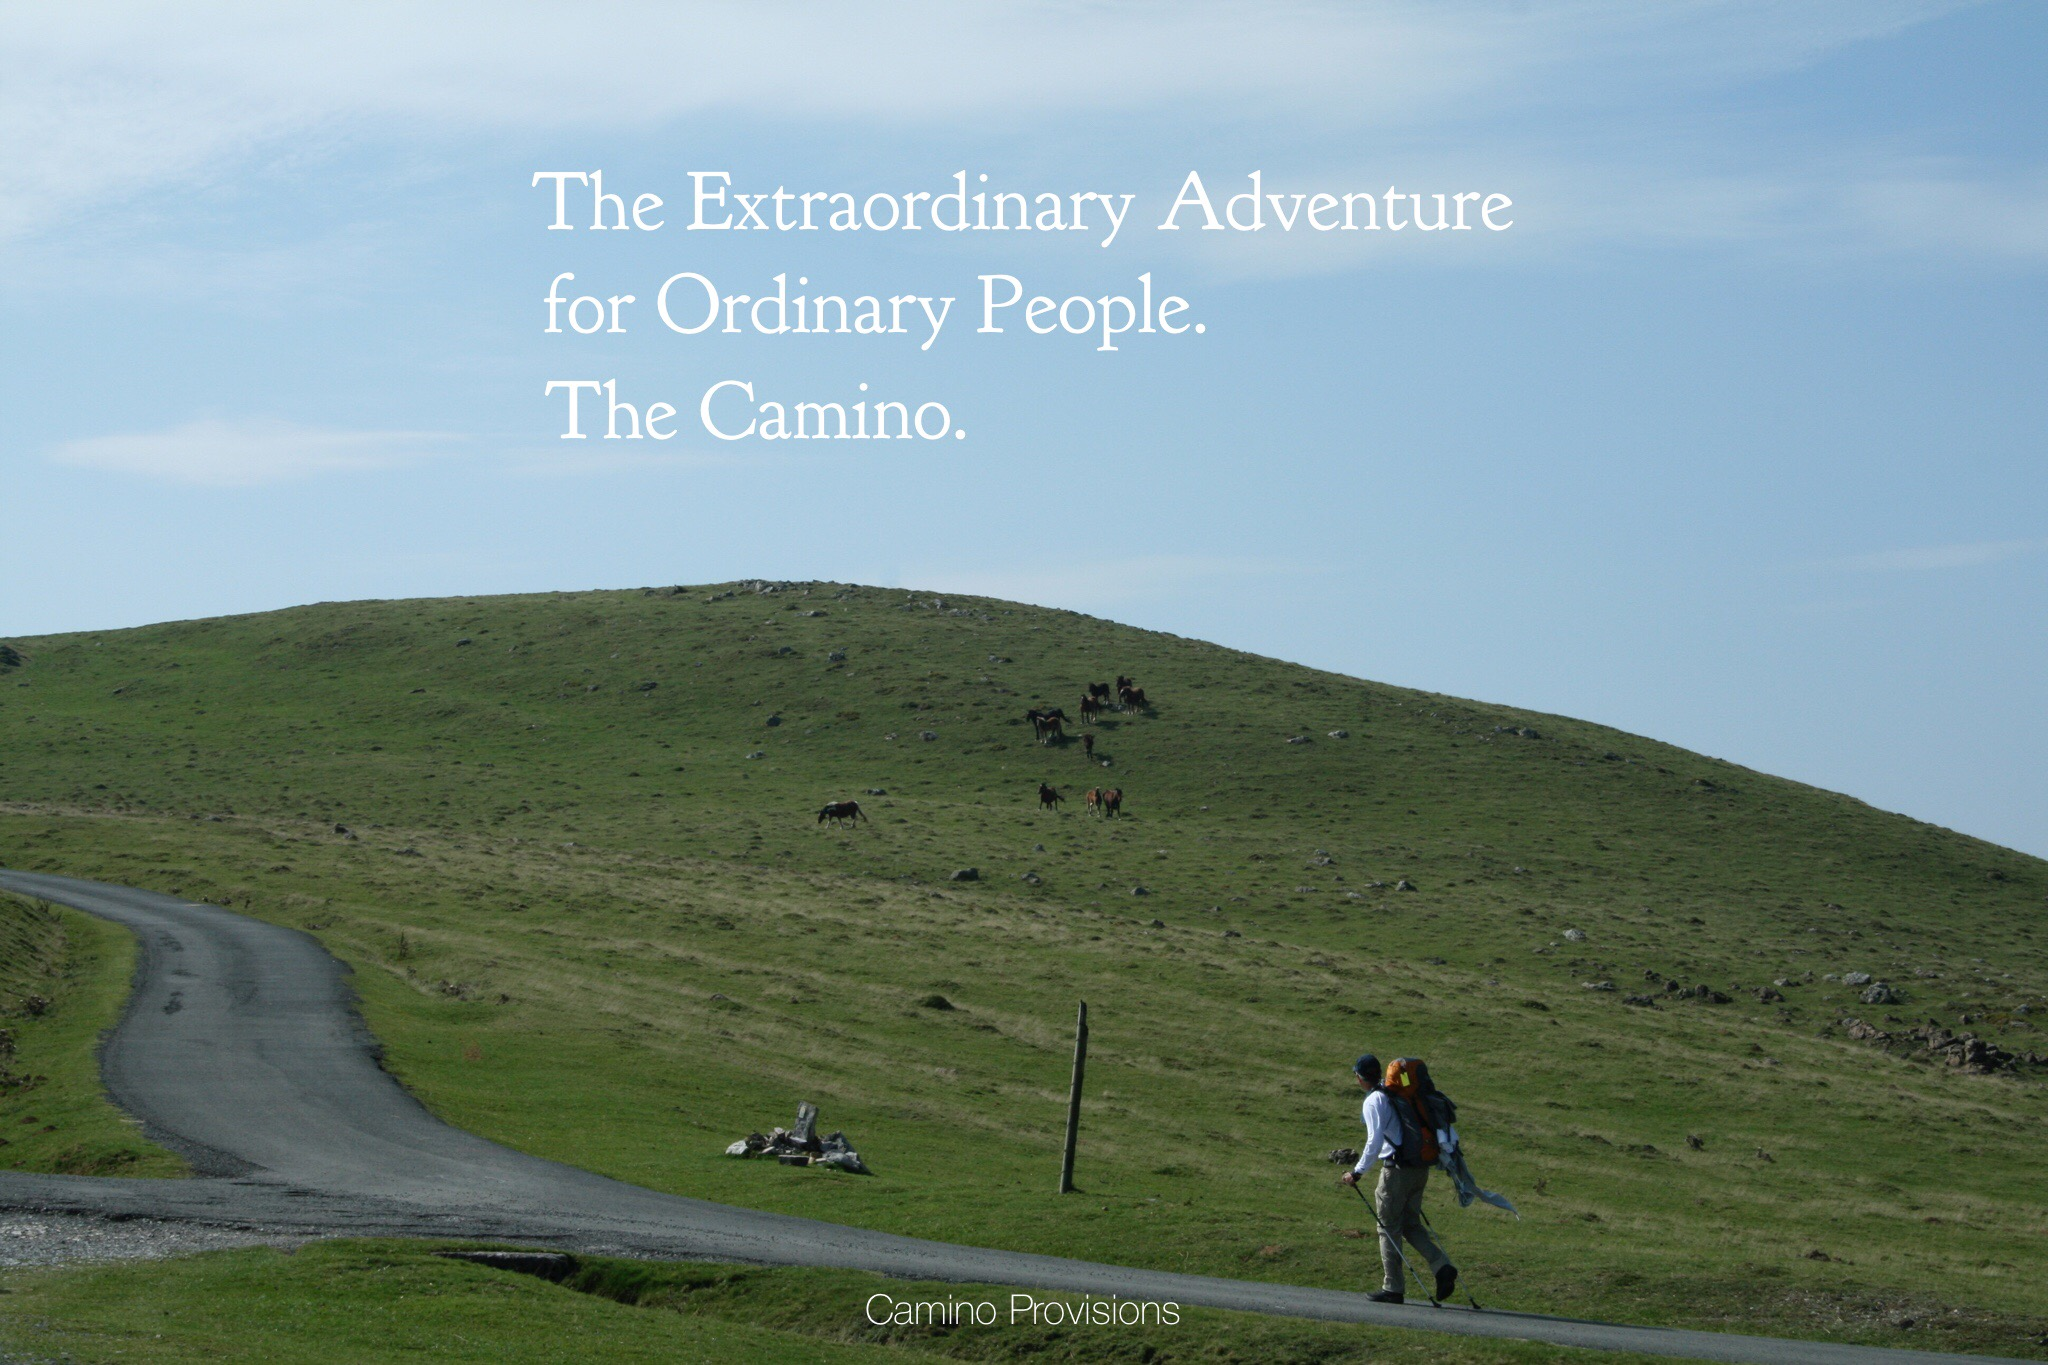 """Wick crossing the Pyrenees in 2007. Our first """"extraordinary adventure"""" with God."""